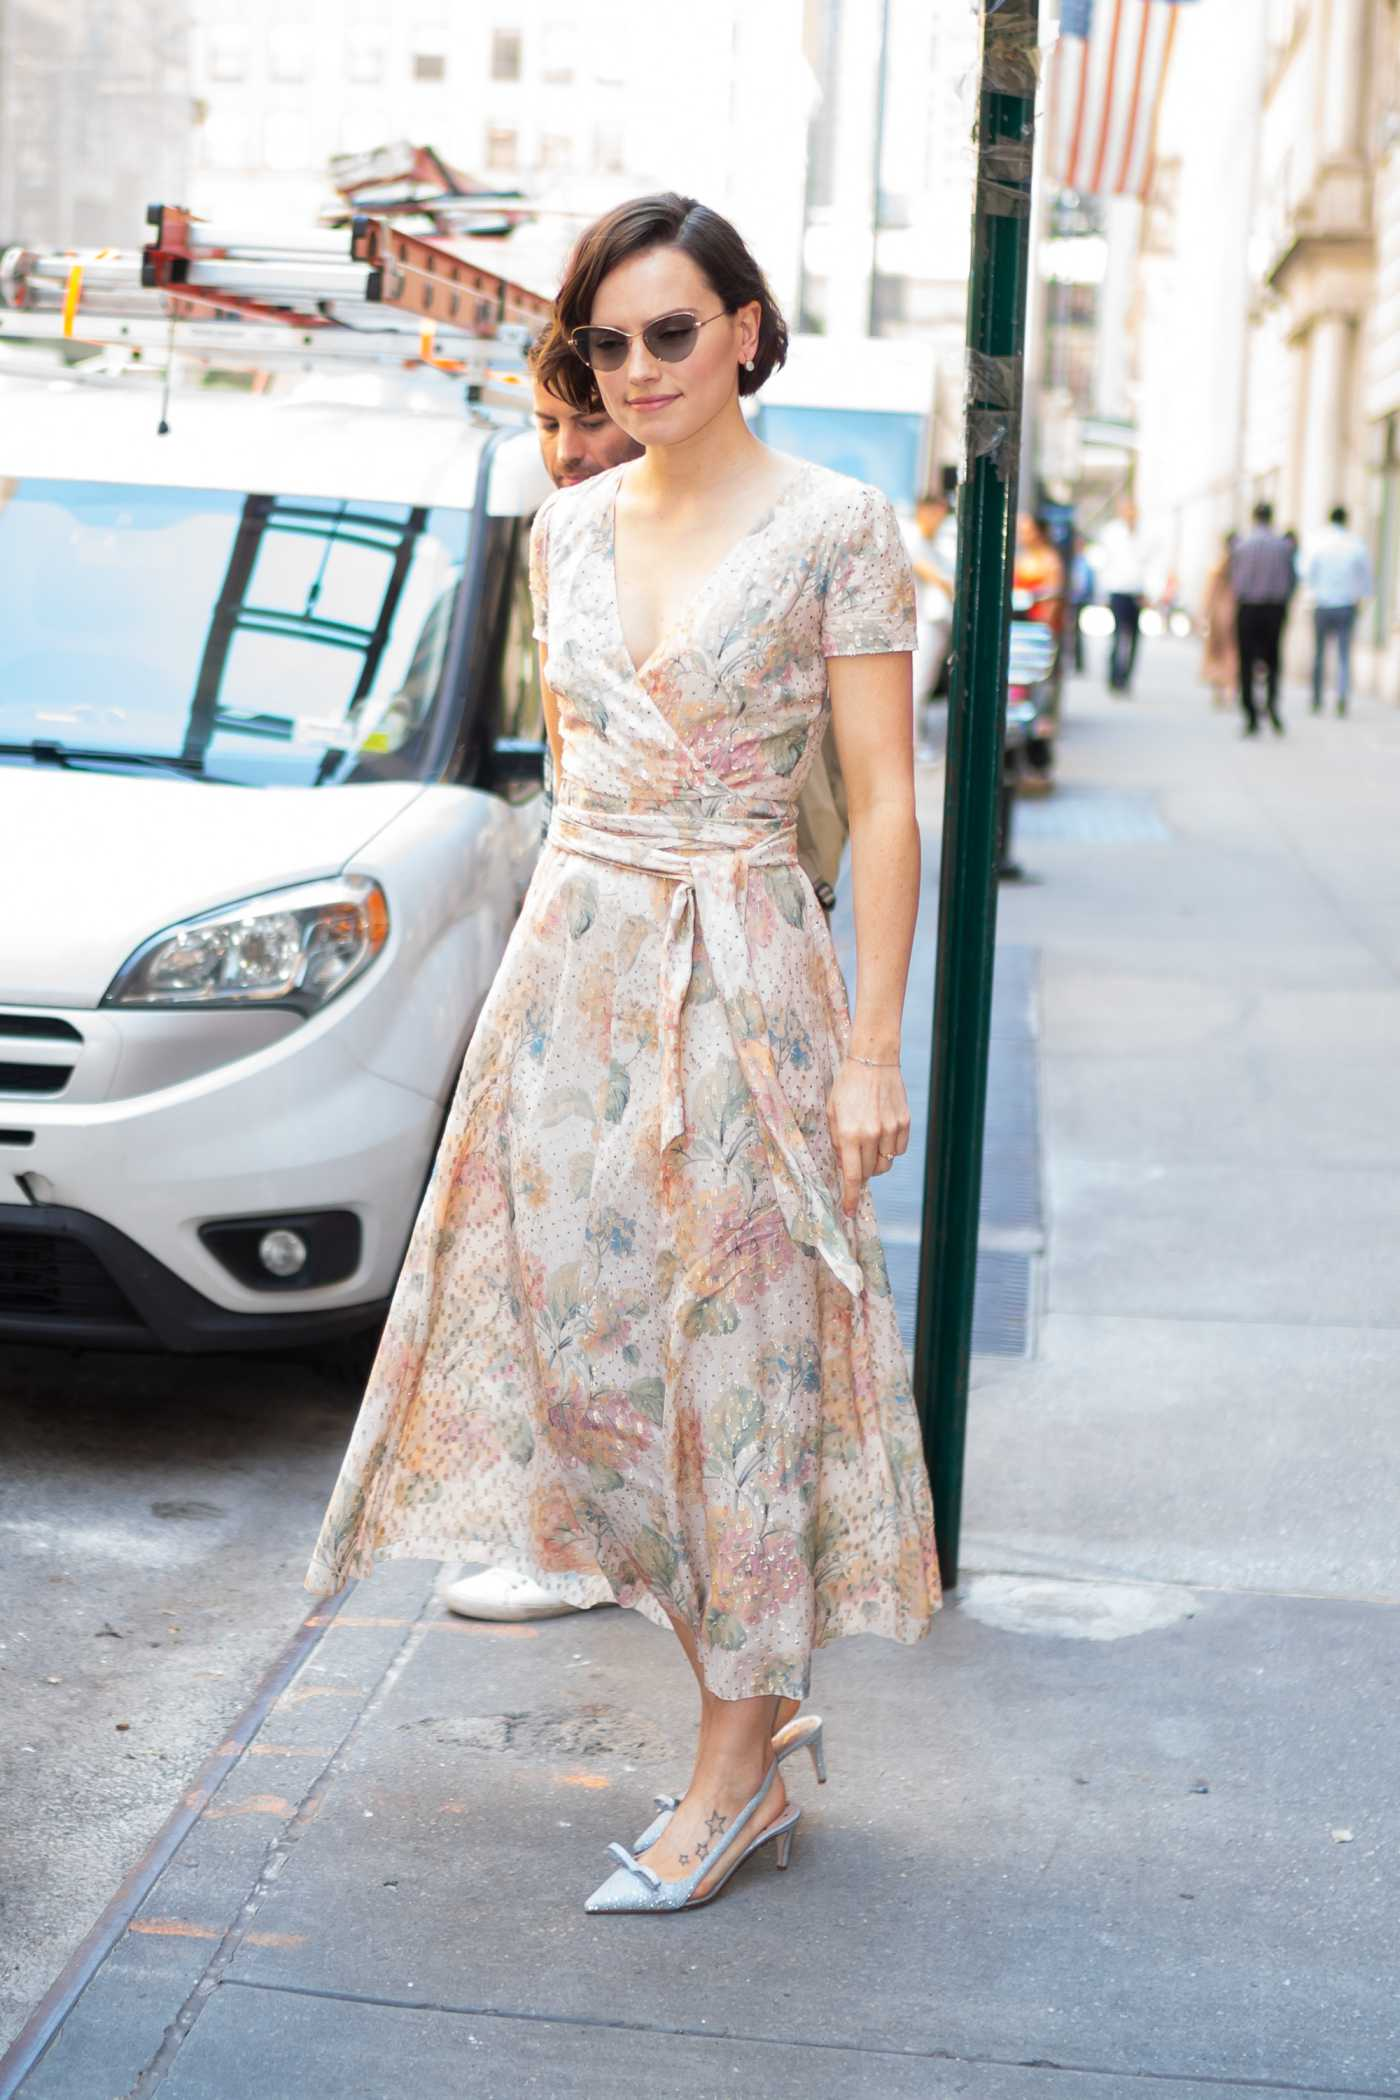 Daisy Ridley in a Floral Dress Was Seen Out in New York City 06/26/2019